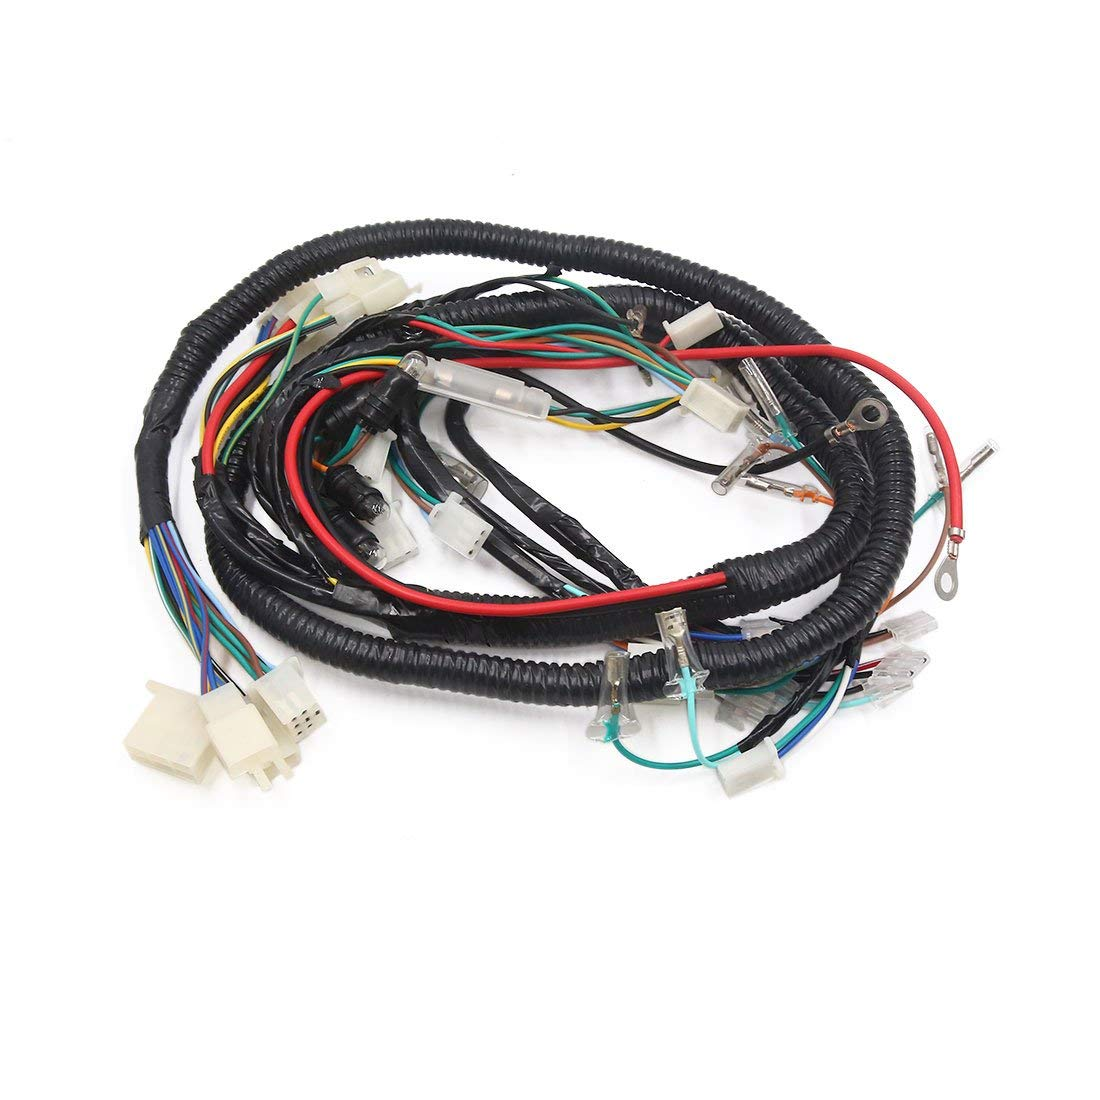 Cheap E Scooter Wiring Find Deals On Line At Main Wire Harness Get Quotations Uxcell Female Motorcycle Electrical Cable Assembly Black